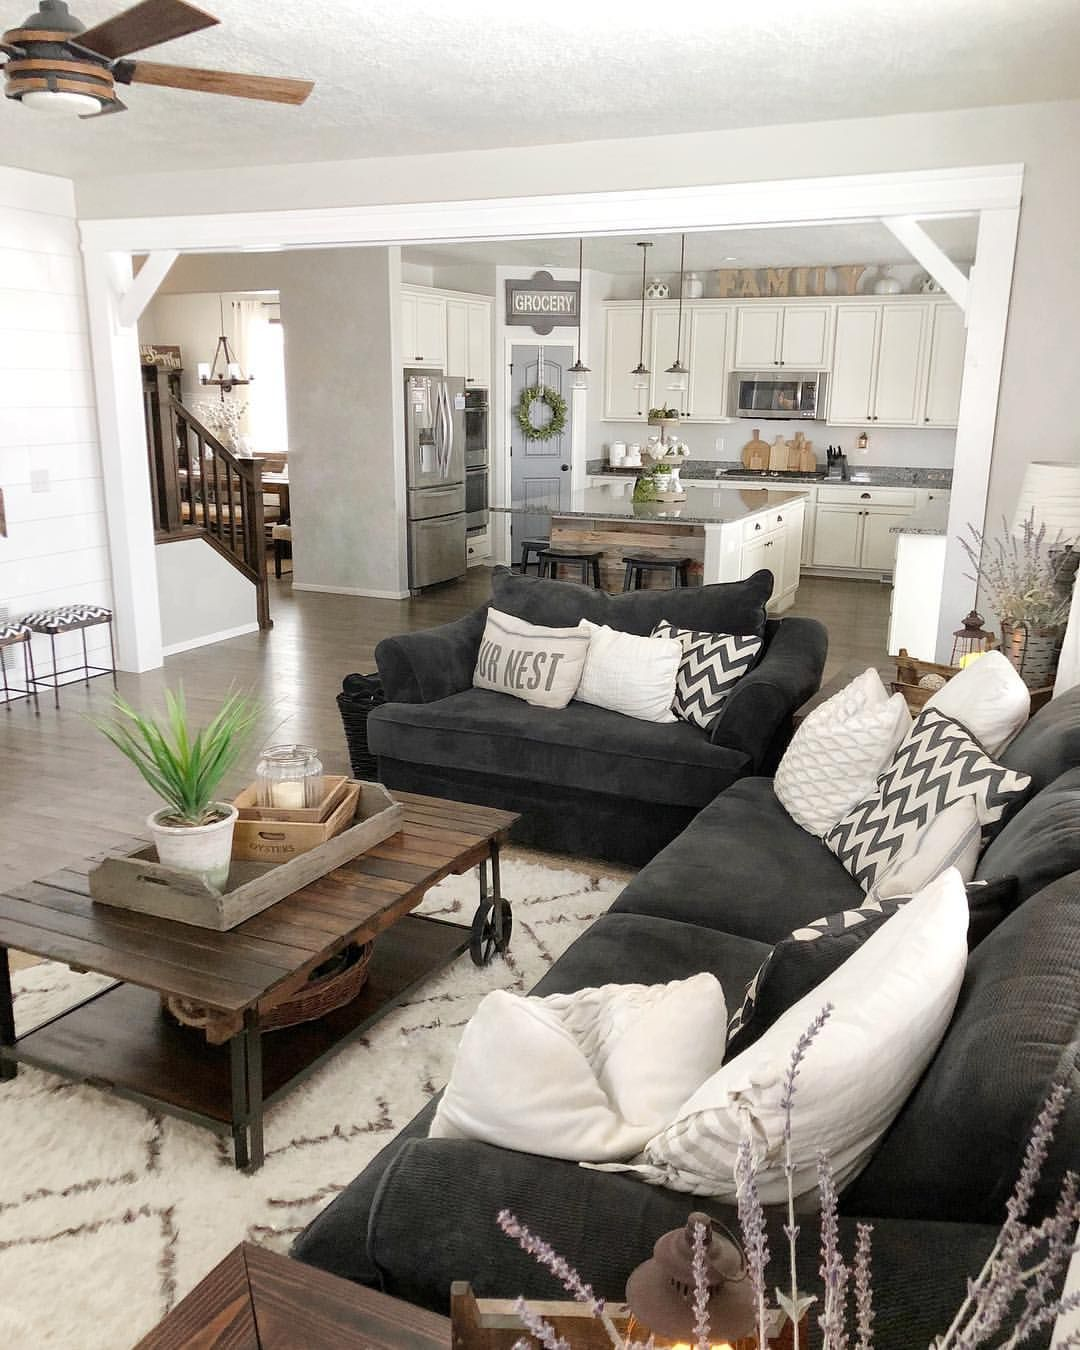 10 Modern Farmhouse Living Room Ideas: Pin By Melissa Alexander On Home Ideas In 2019